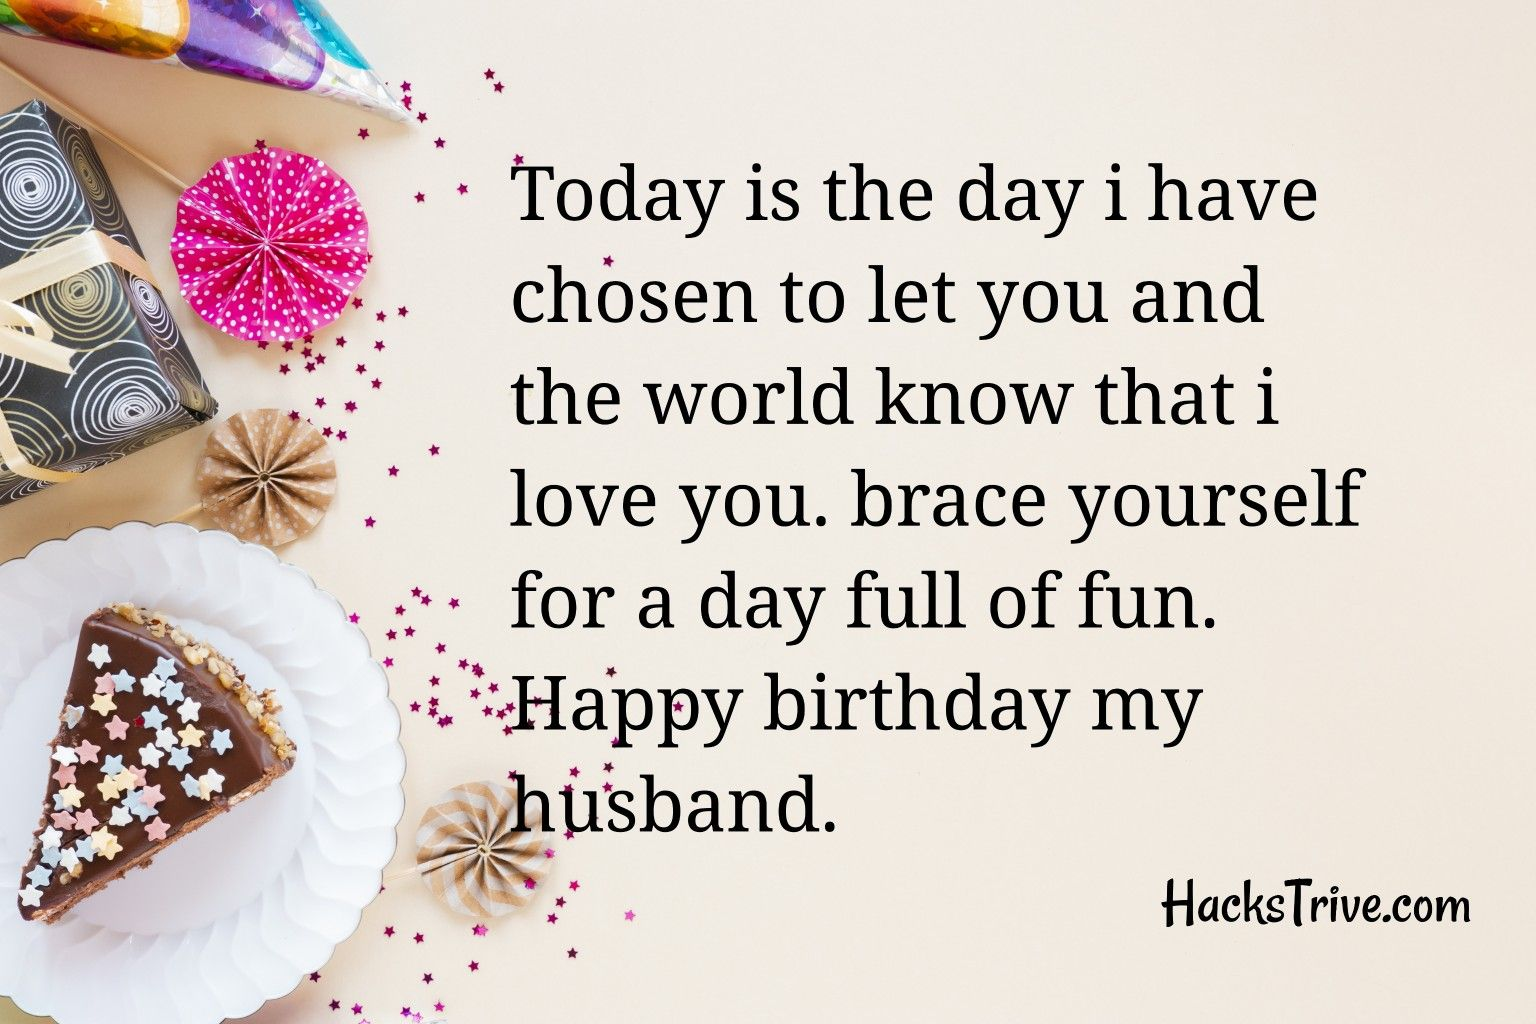 Heartfelt Birthday Wishes for Husband Romantic & Funny